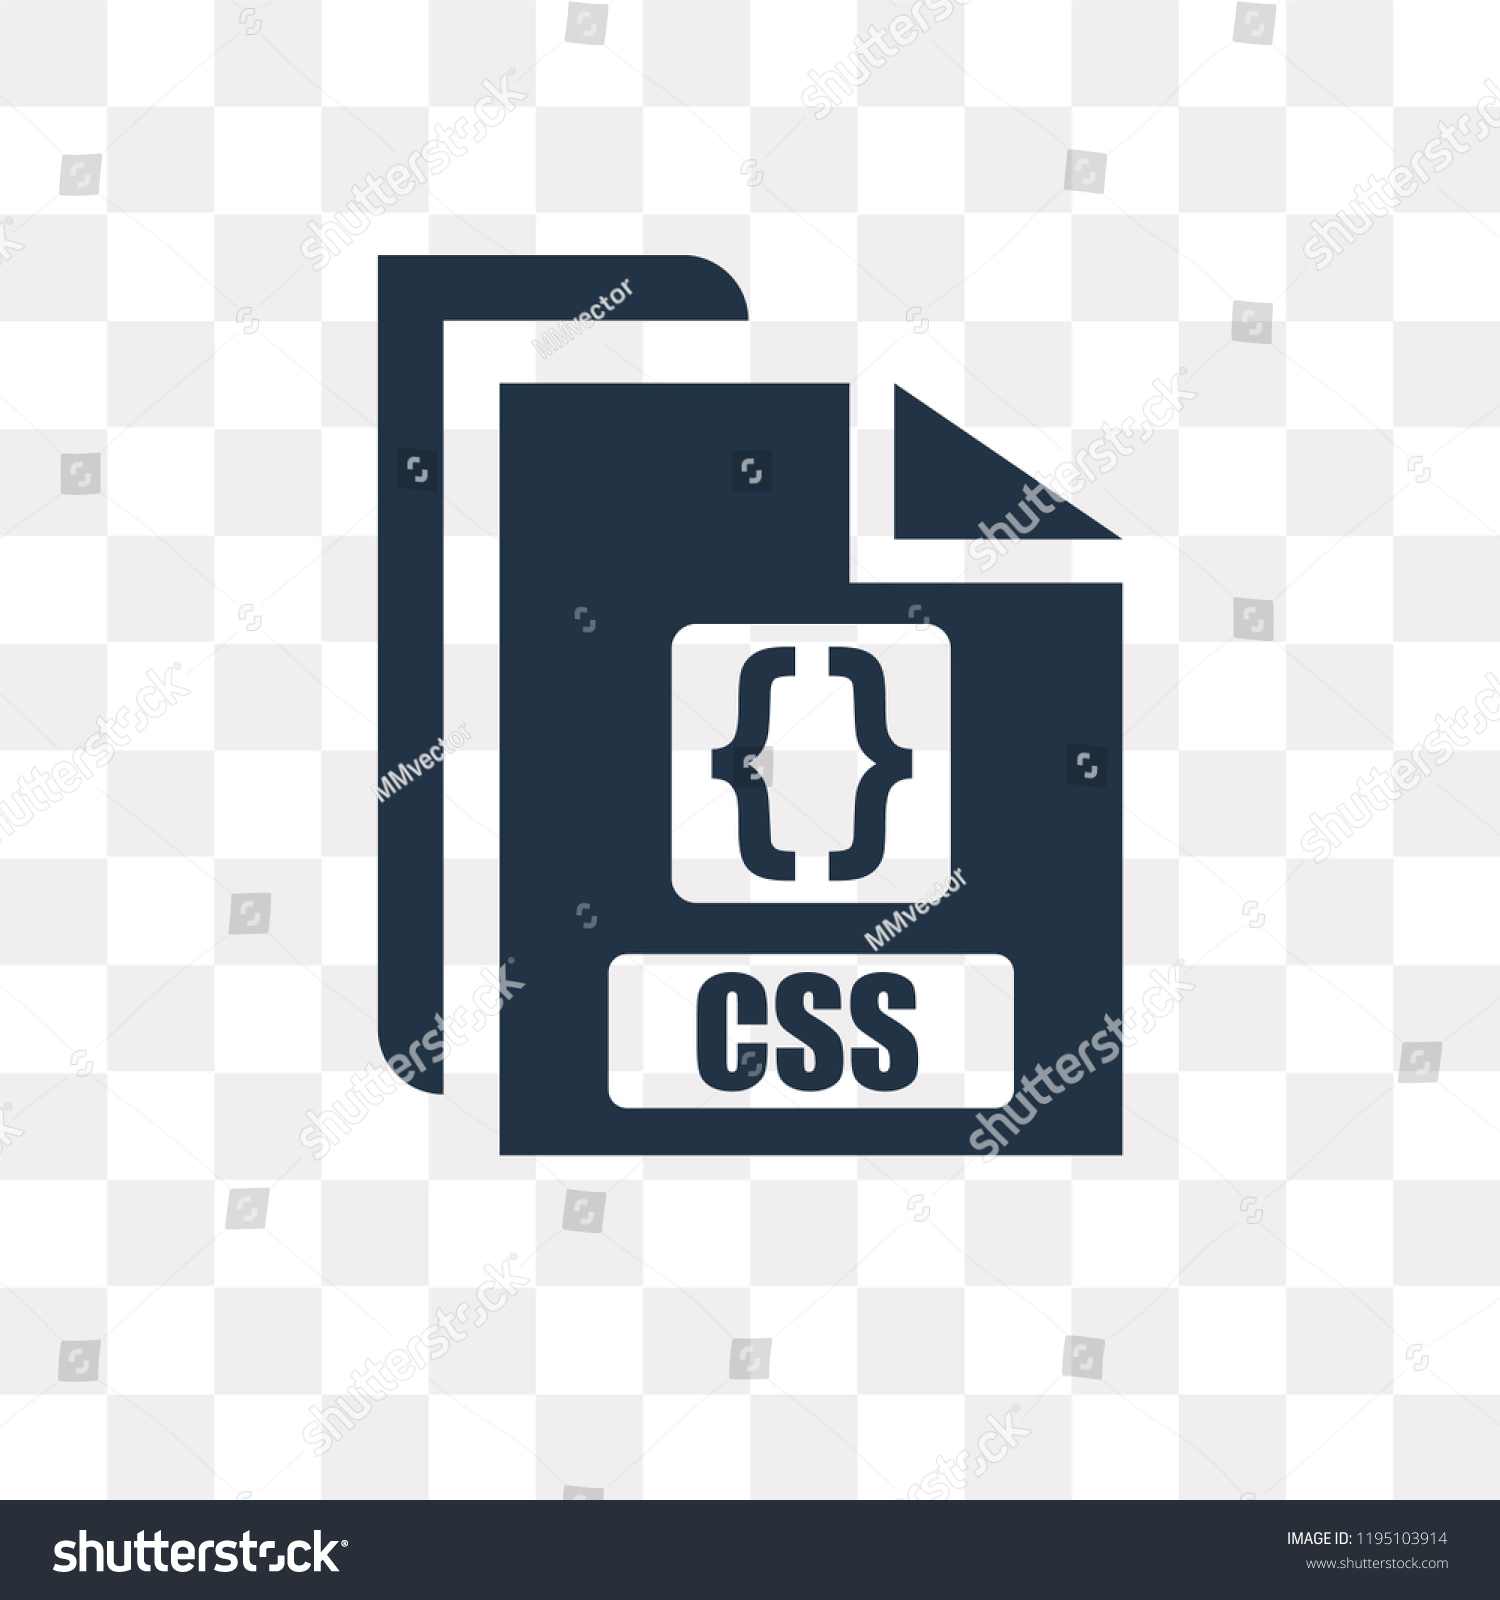 Css Vector Icon Isolated On Transparent Stock Vector